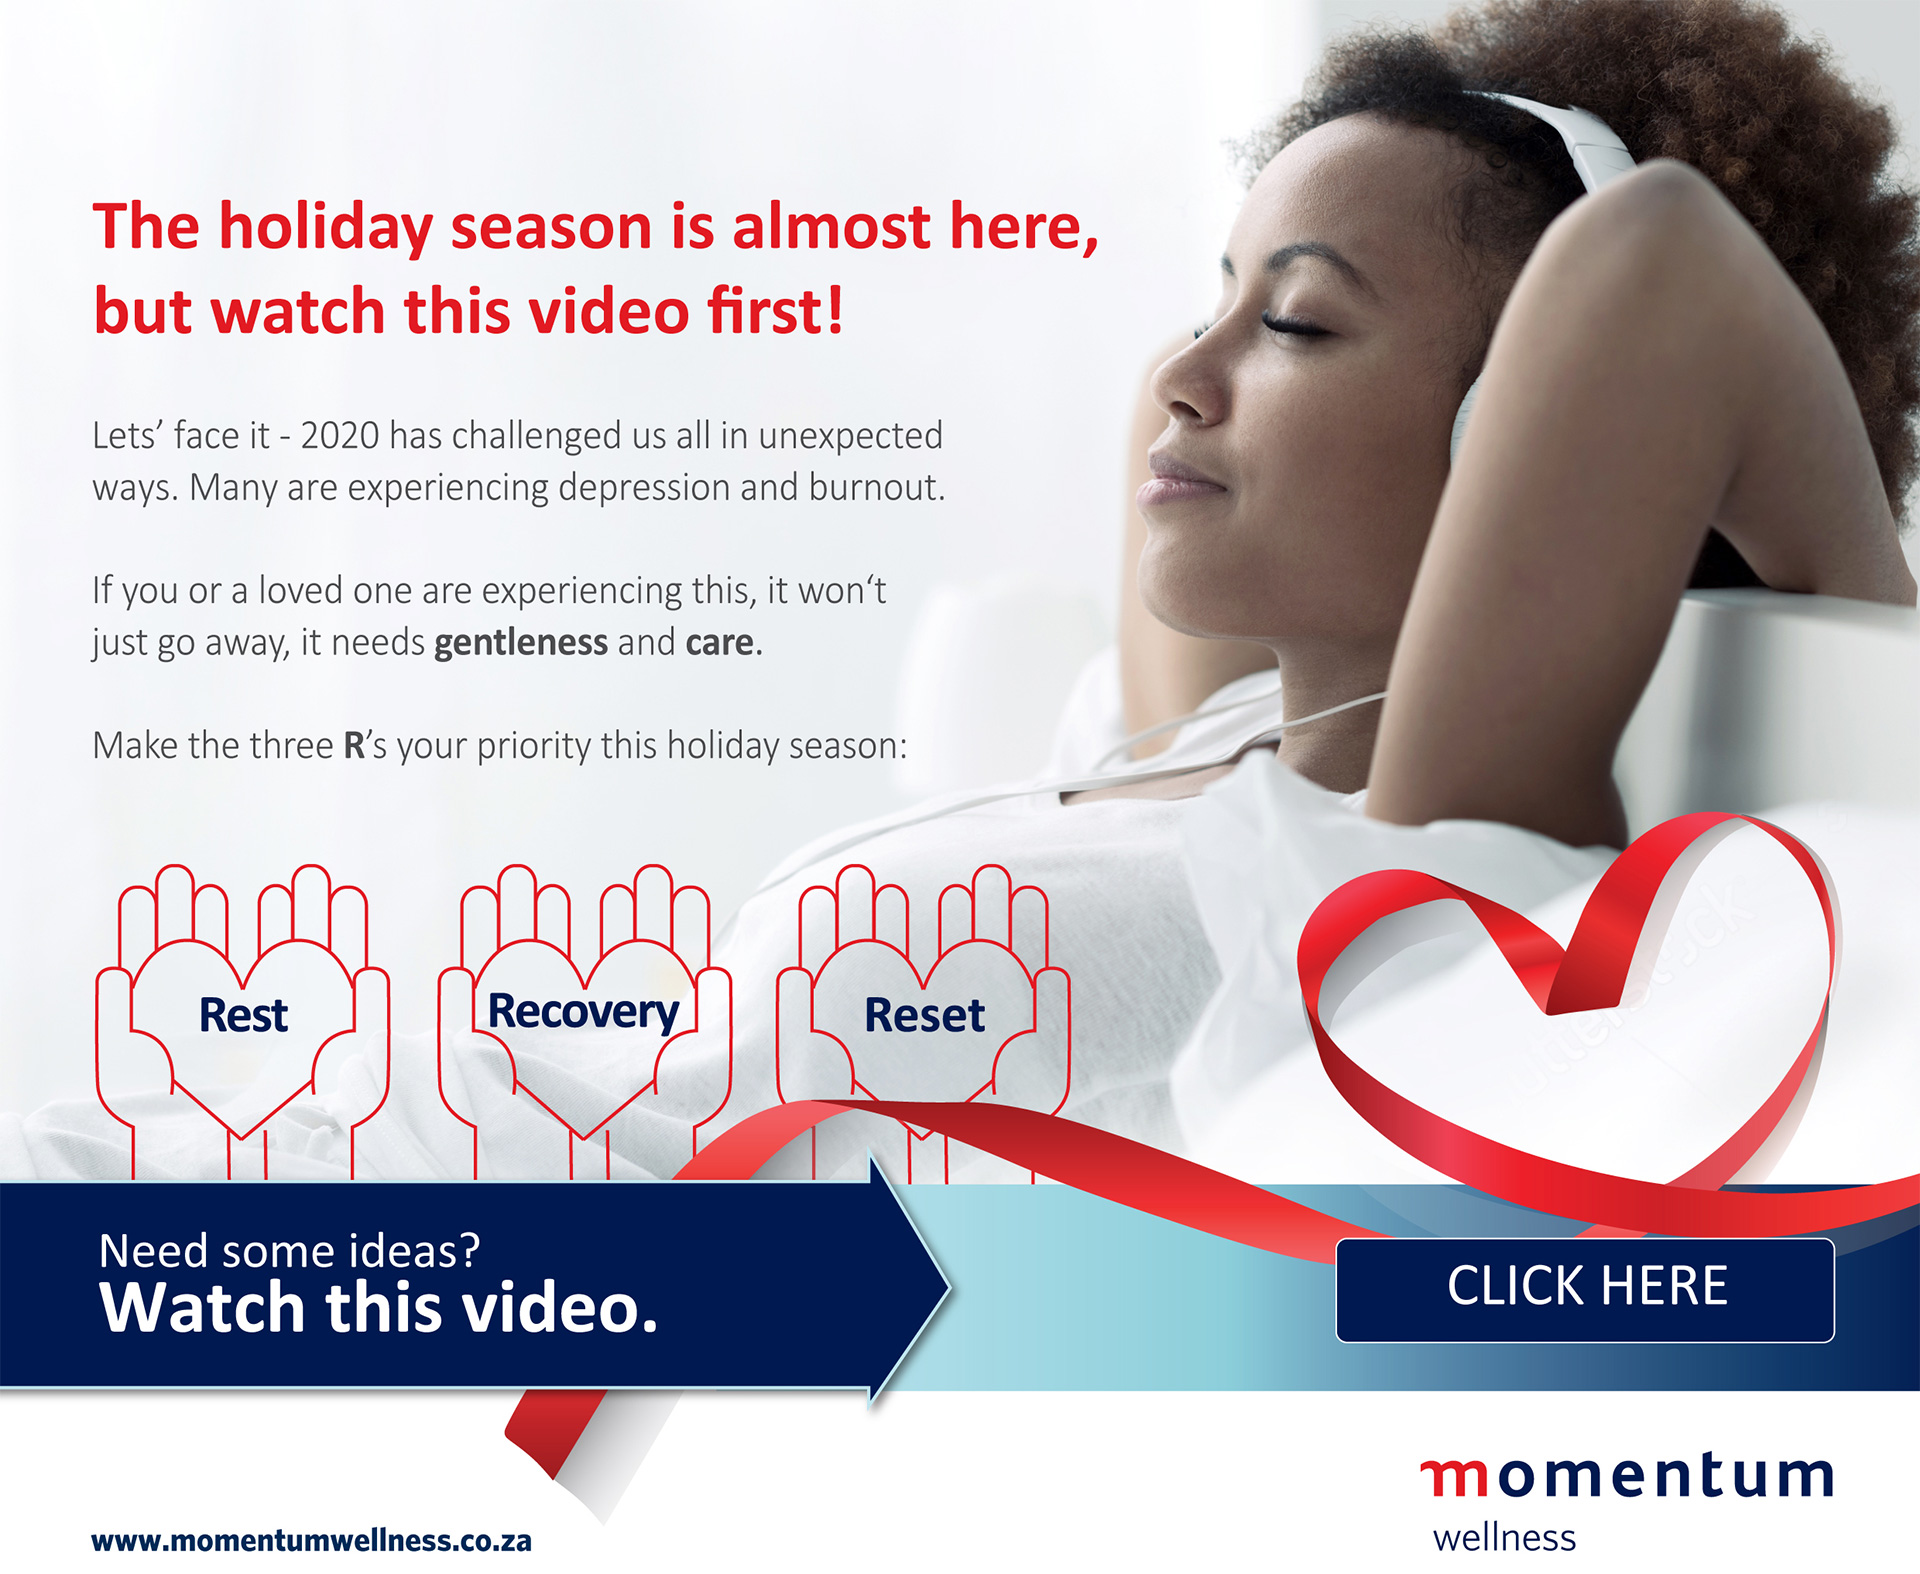 The holiday season is almost here, but watch this video first!